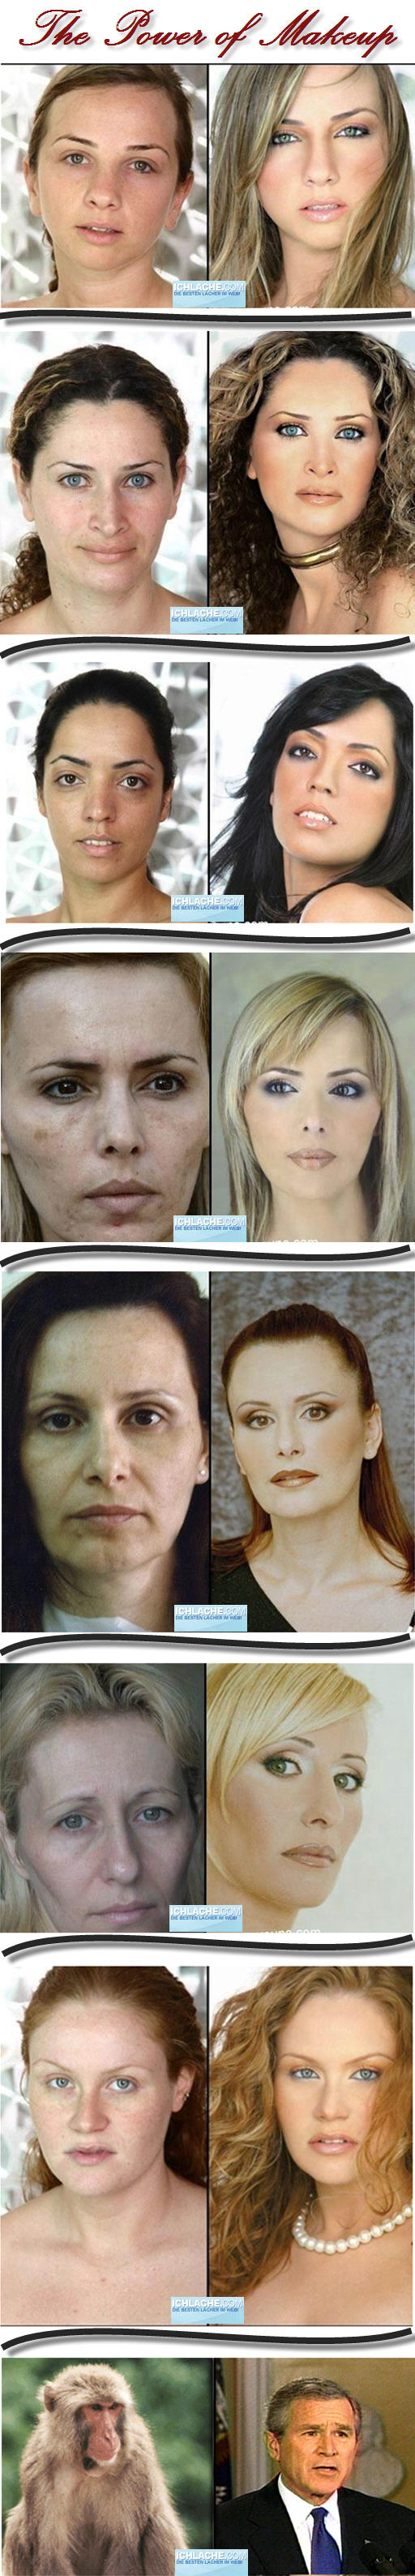 ichlache-picdump-no-34---the-power-of-makeup-1211890604